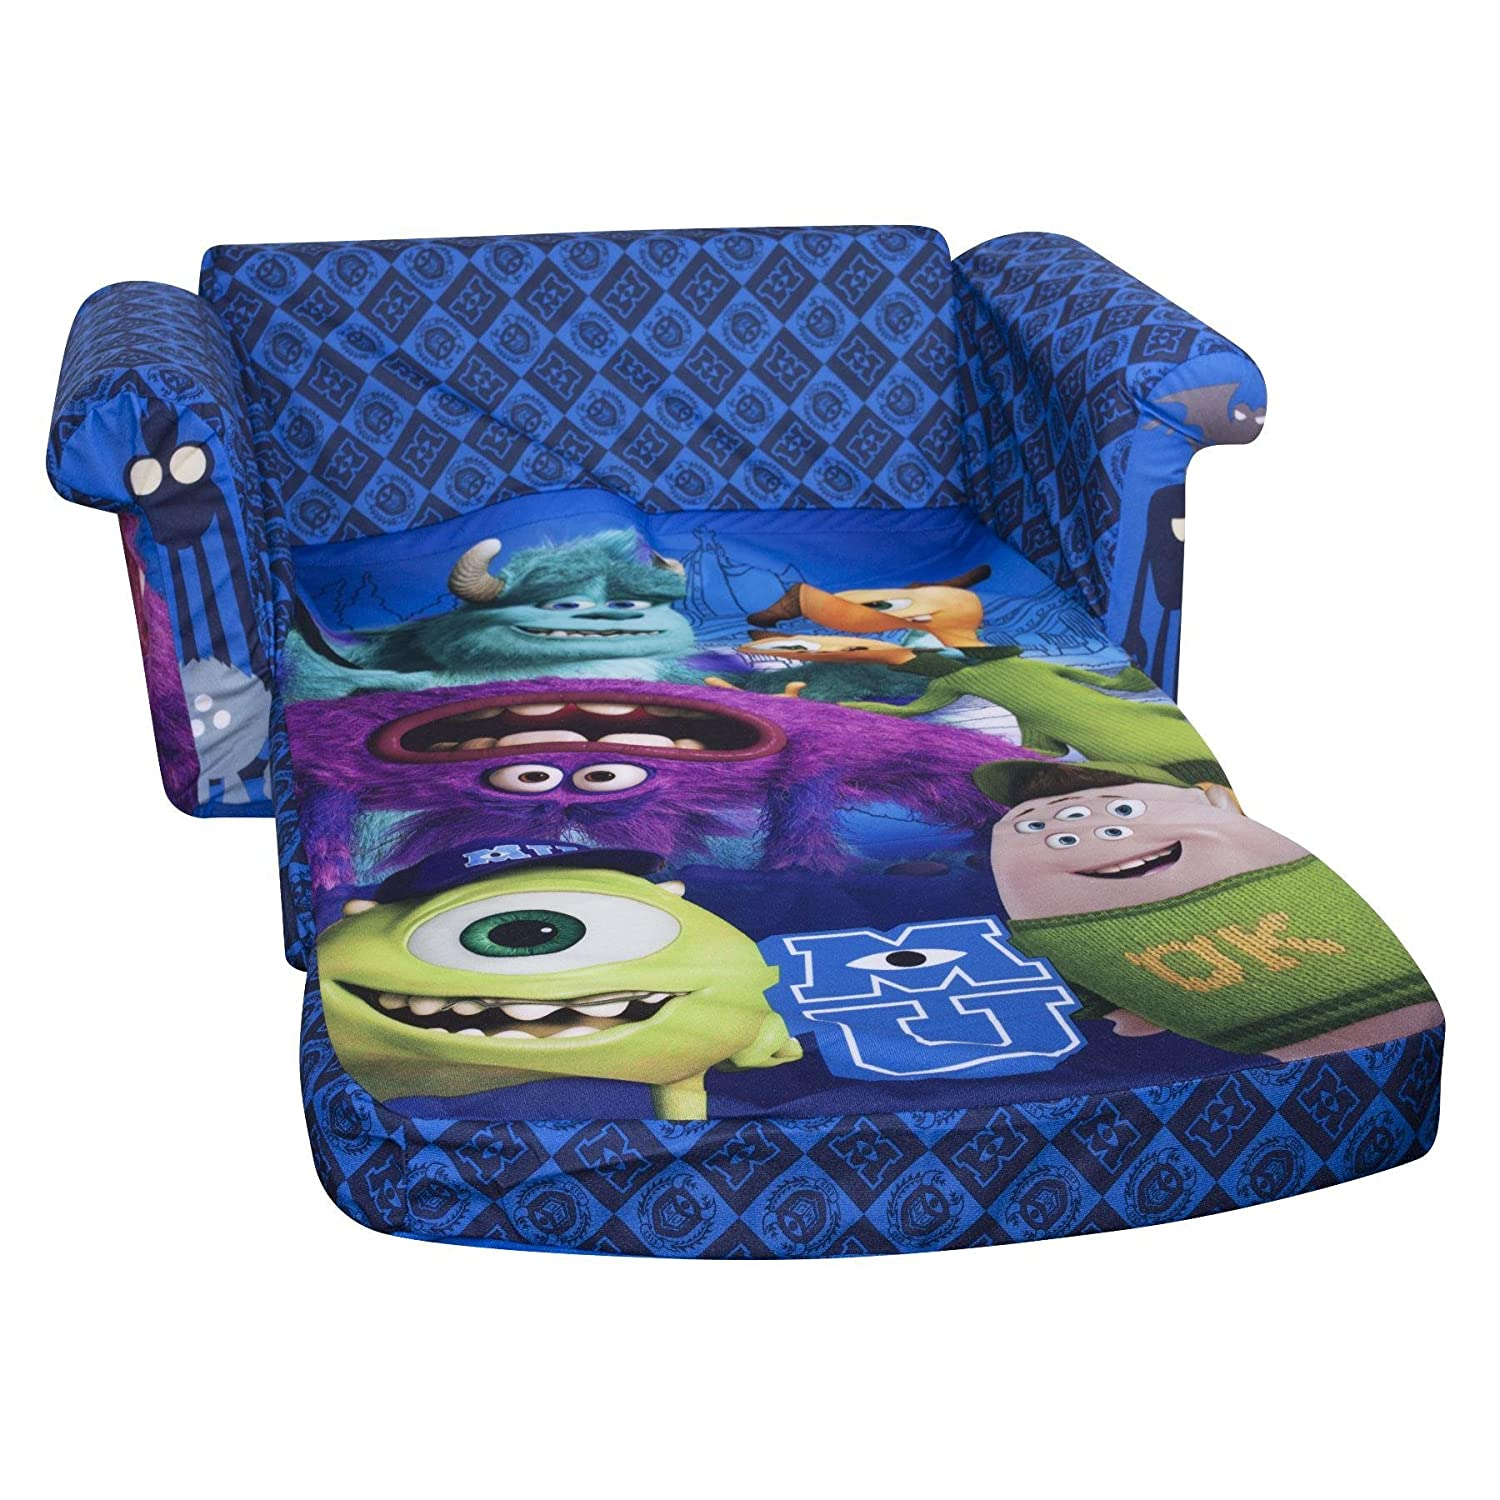 Marshmallow Furniture Monsters University Flip Open Sofa Groovy Kids Gear